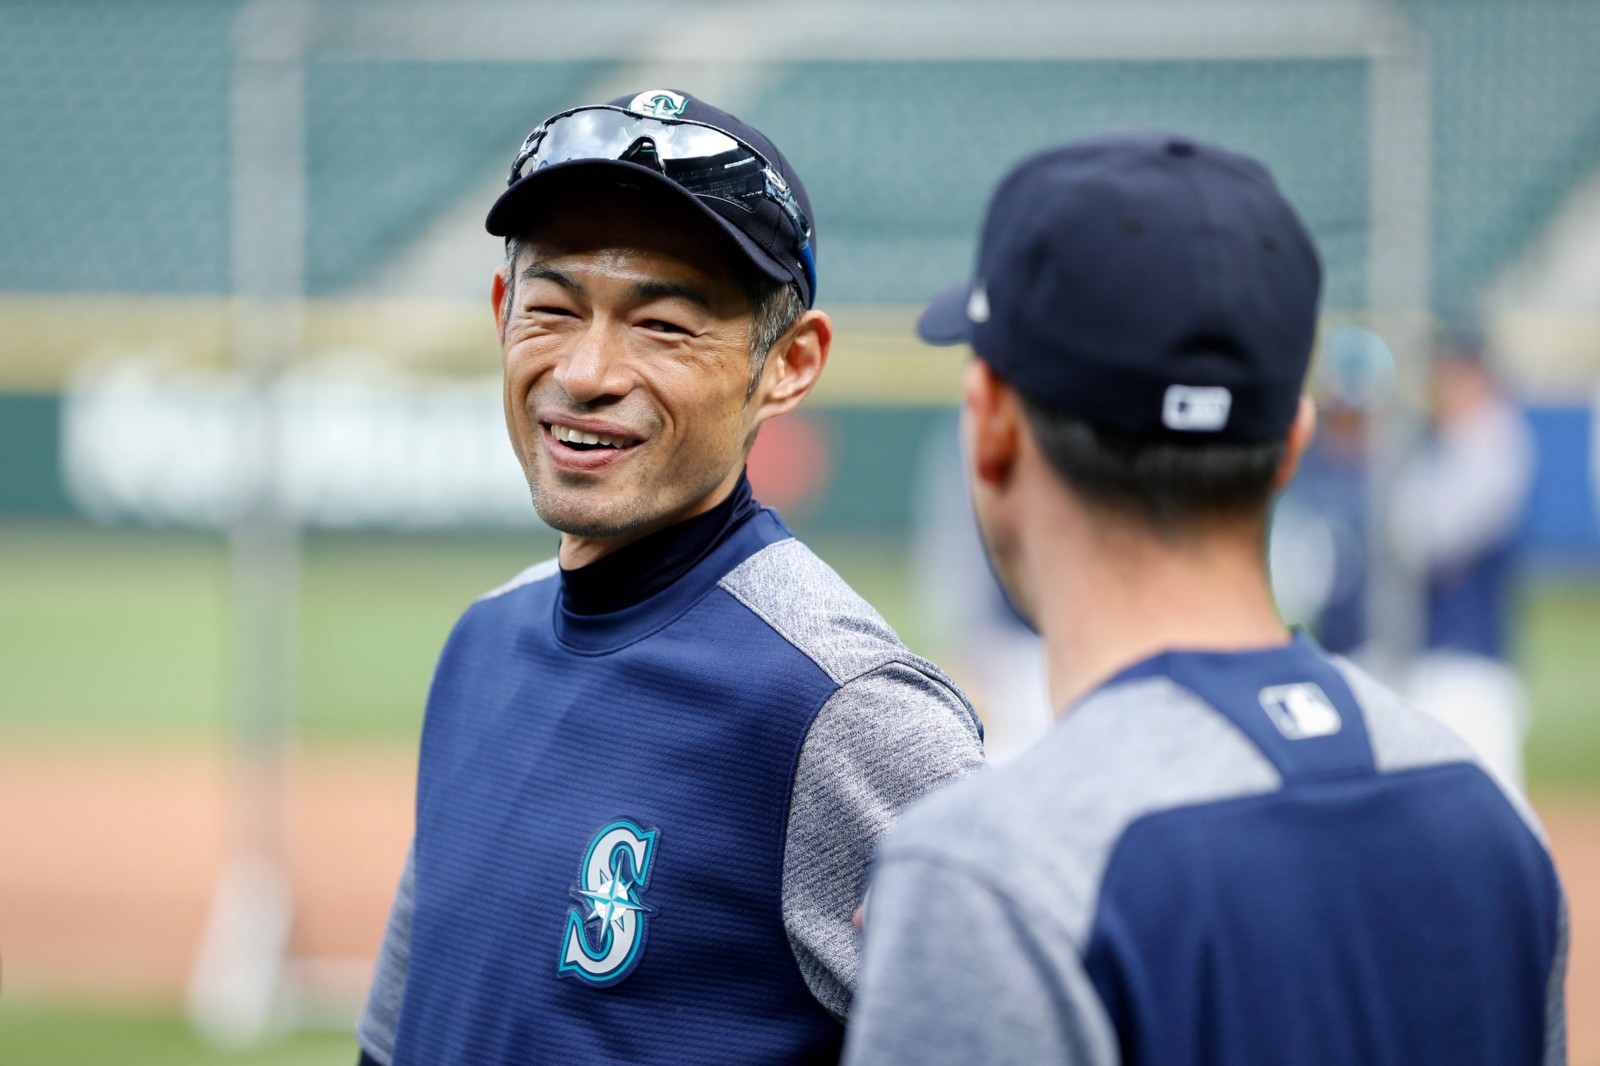 Mariners move Ichiro to front office